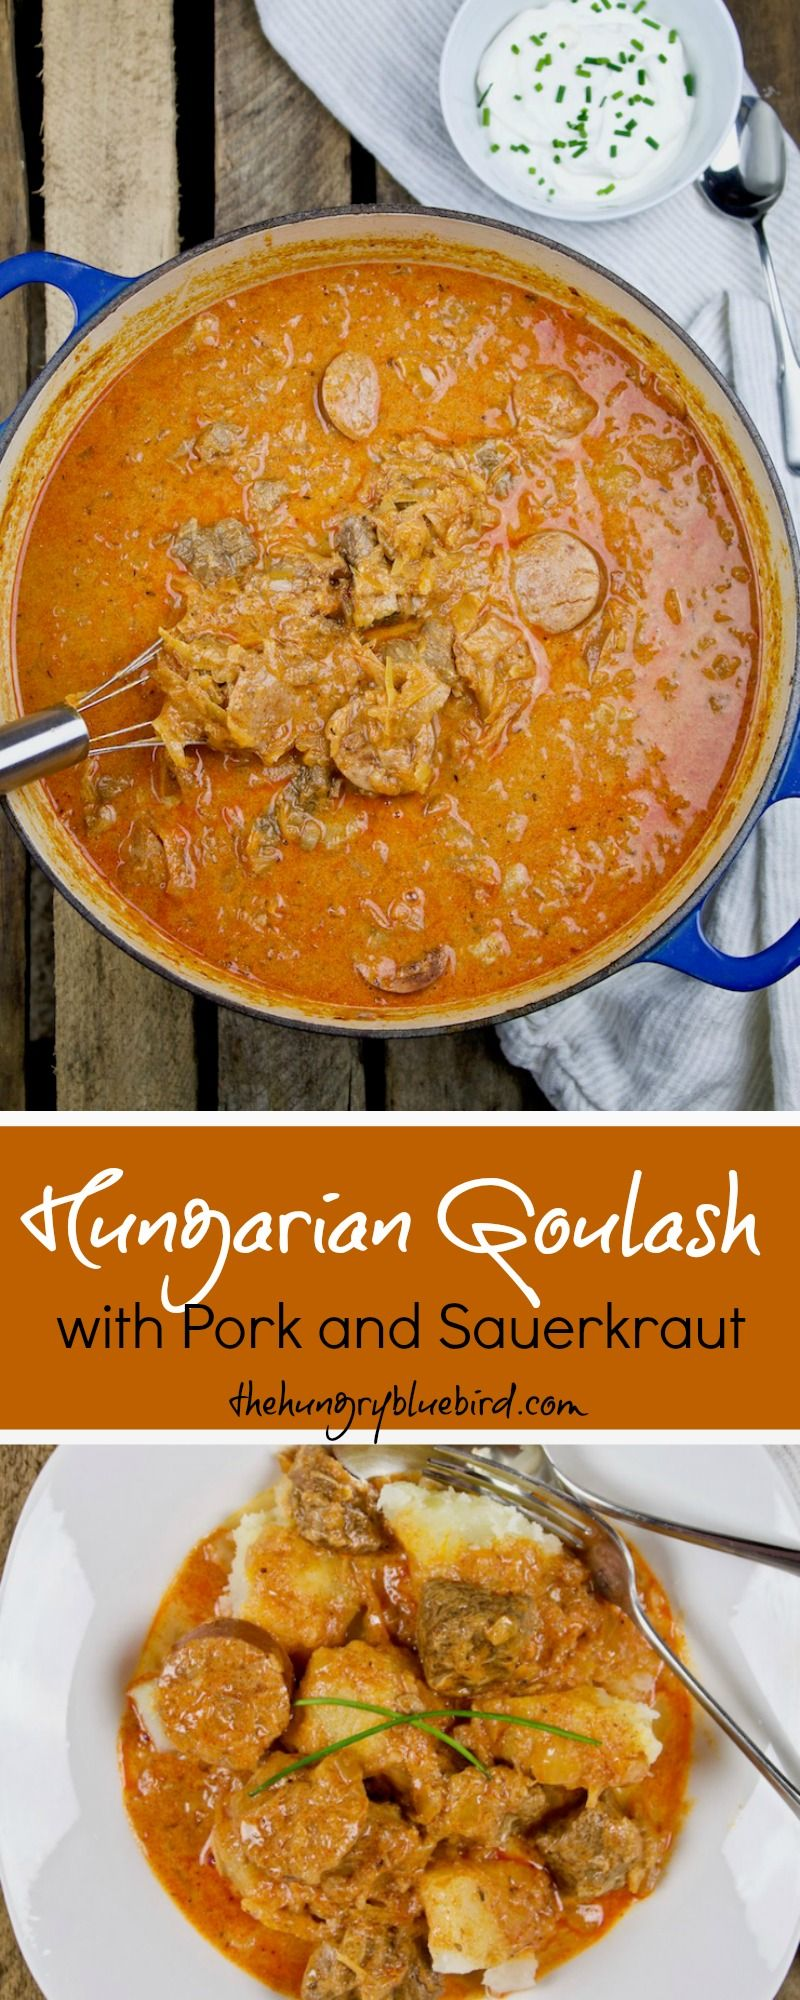 Goulash pork recipe: not in Hungarian, but also delicious